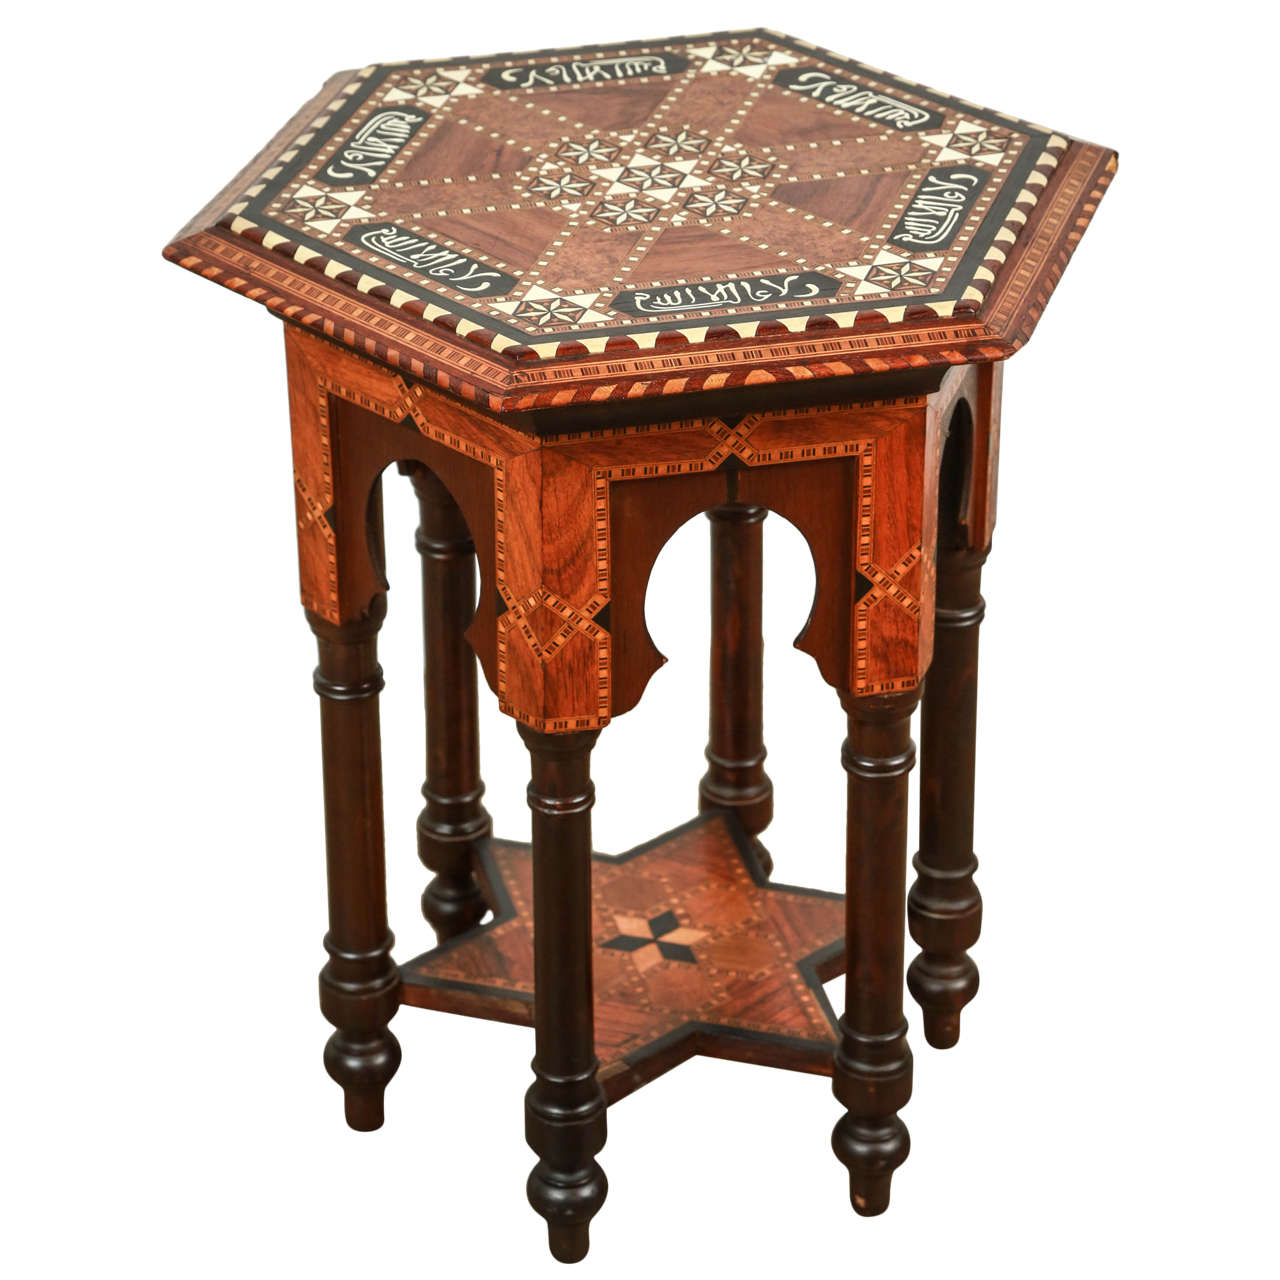 Alhambra spanish marquetry wood side moorish table for for Table in spanish